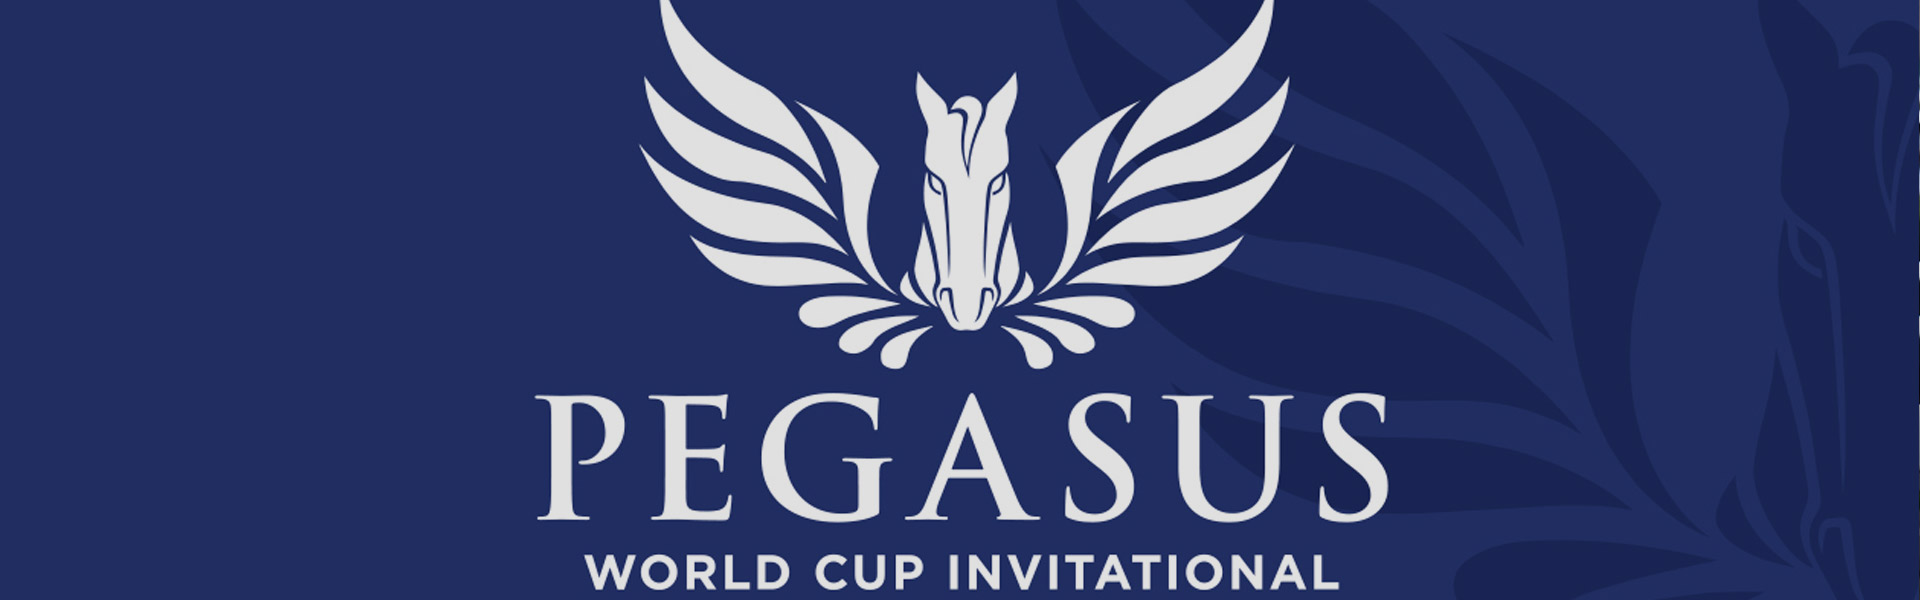 Bet the Pegasus World Cup